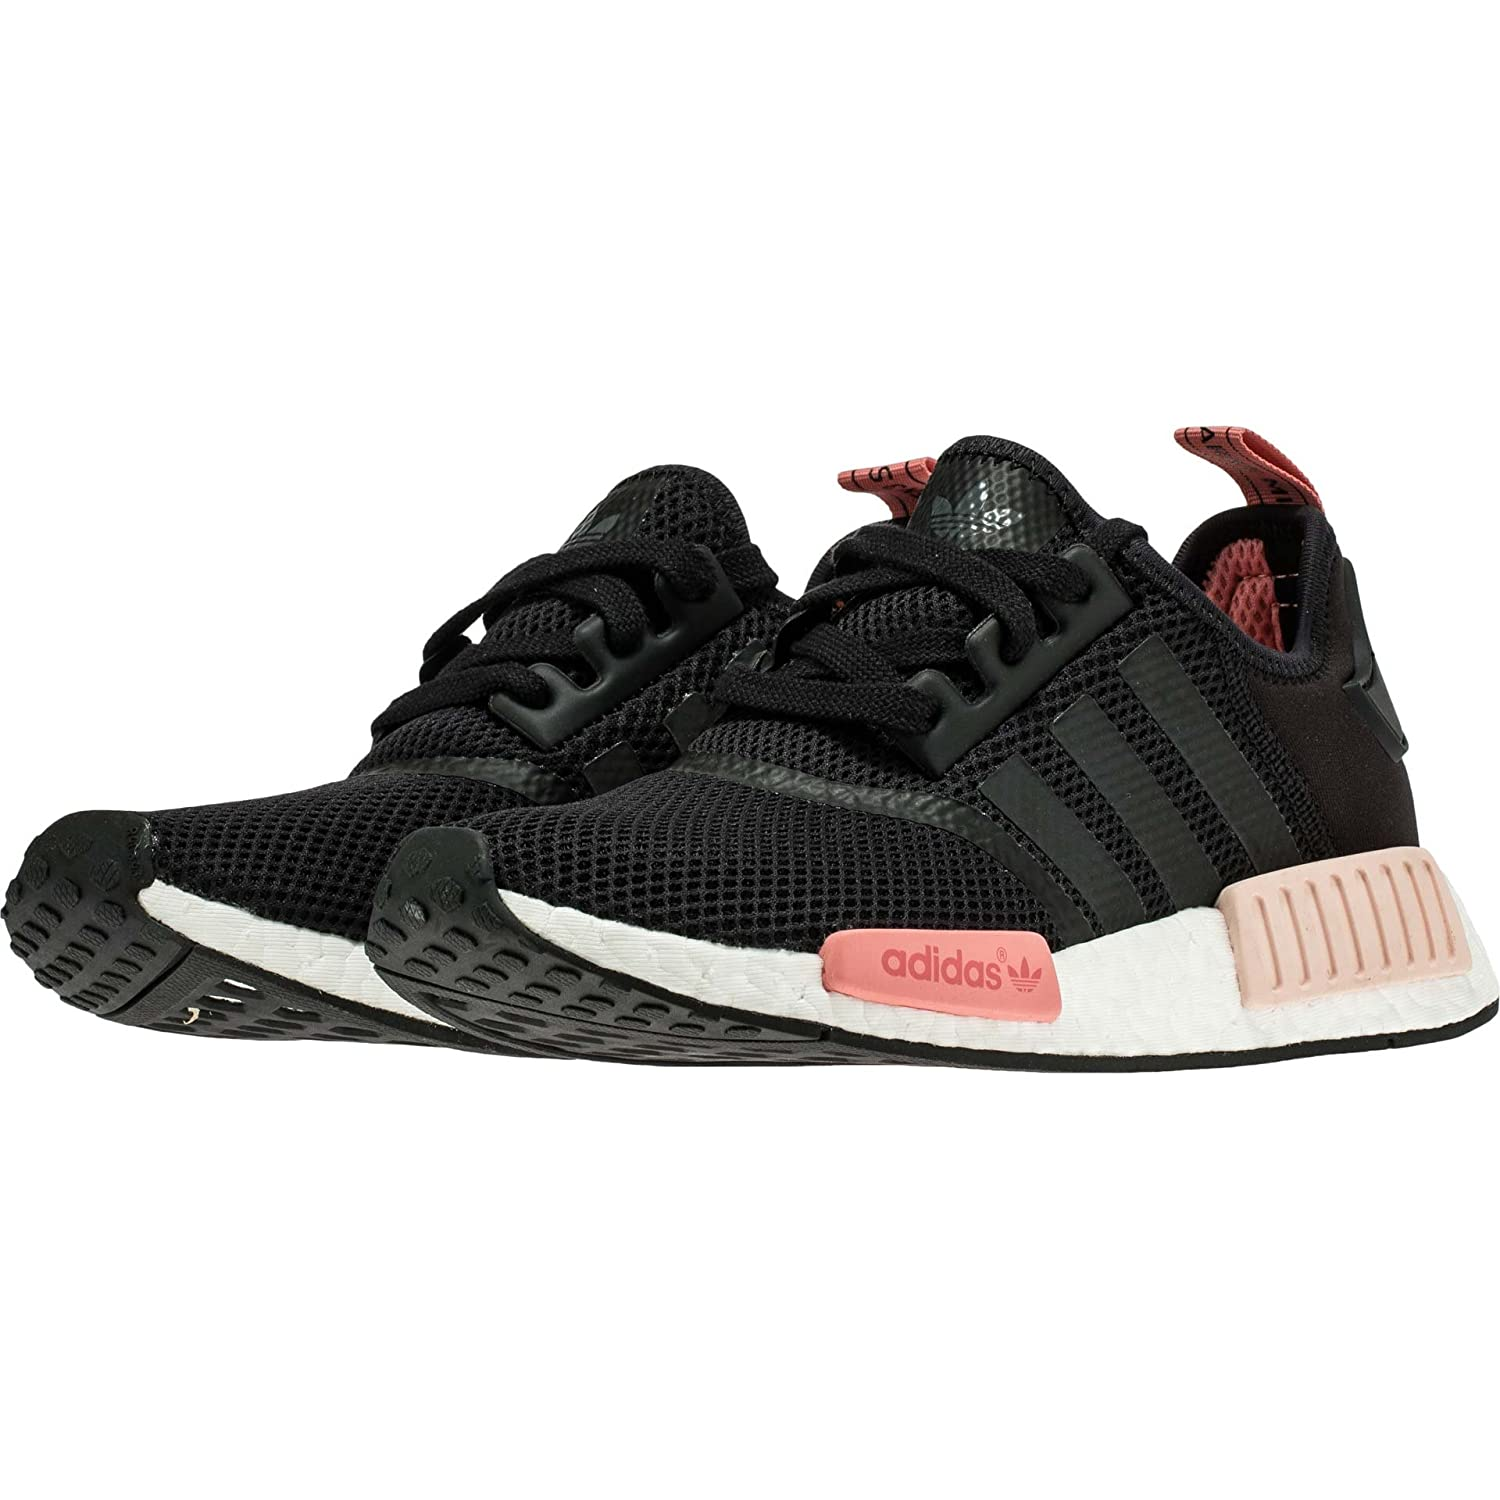 Amazon.com | Adidas WOMEN NMD Runner Mesh Black/Peach S75234 Yeezy (10) |  Running